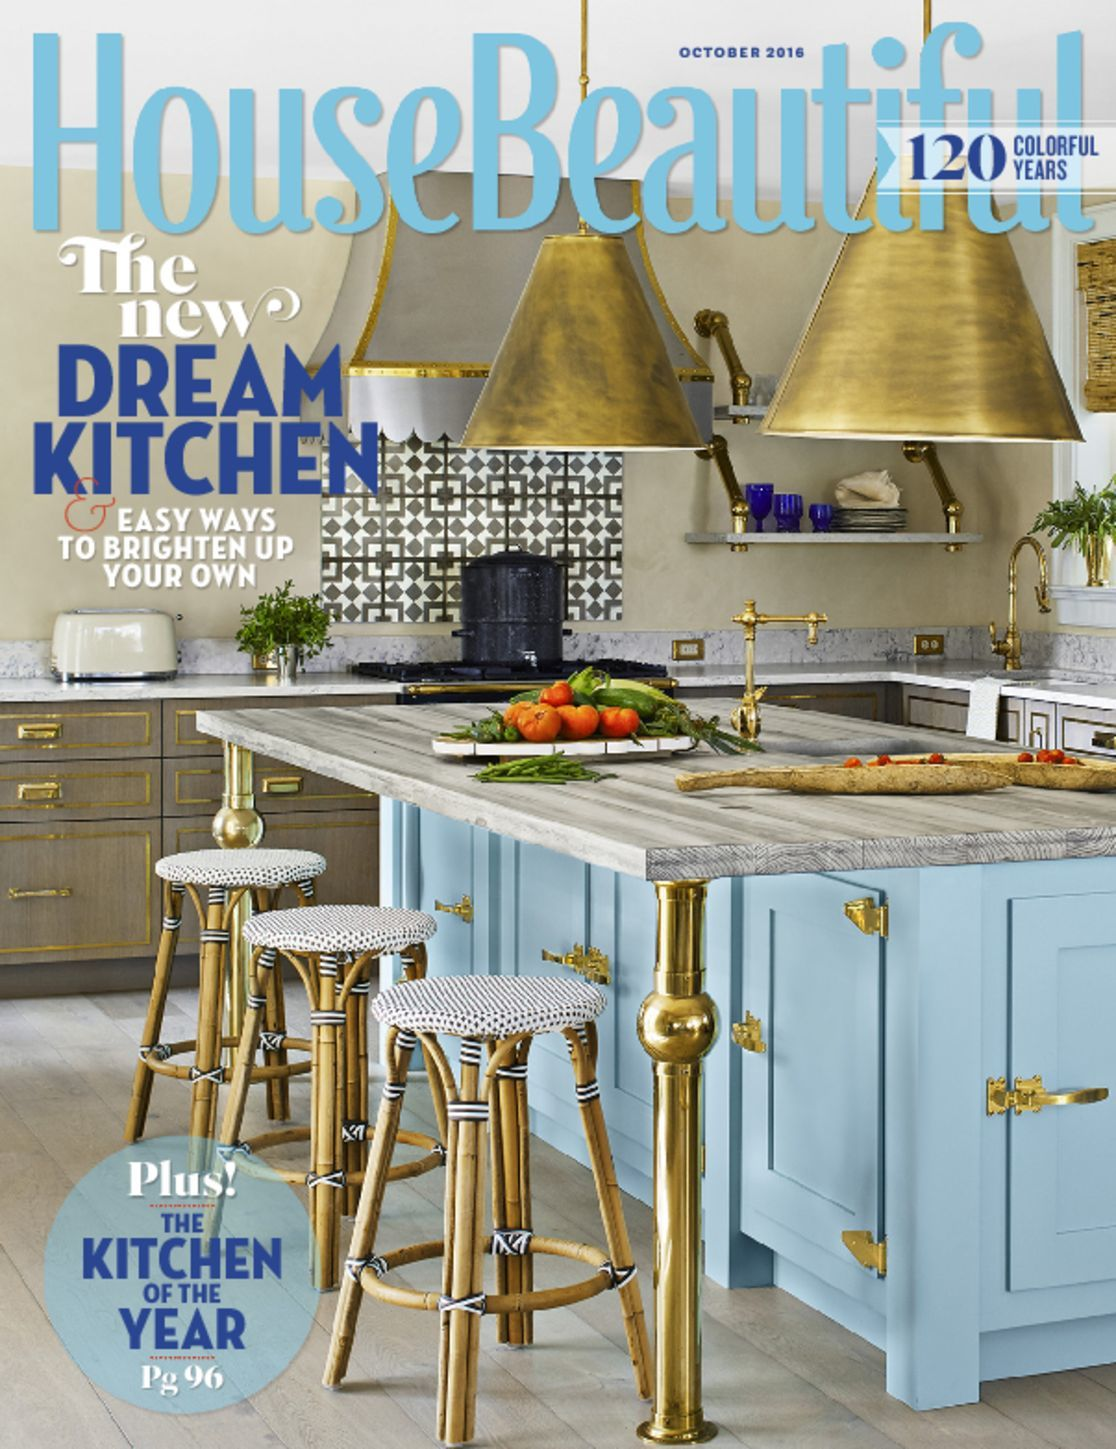 House Beautiful Magazine For a Beautiful Home